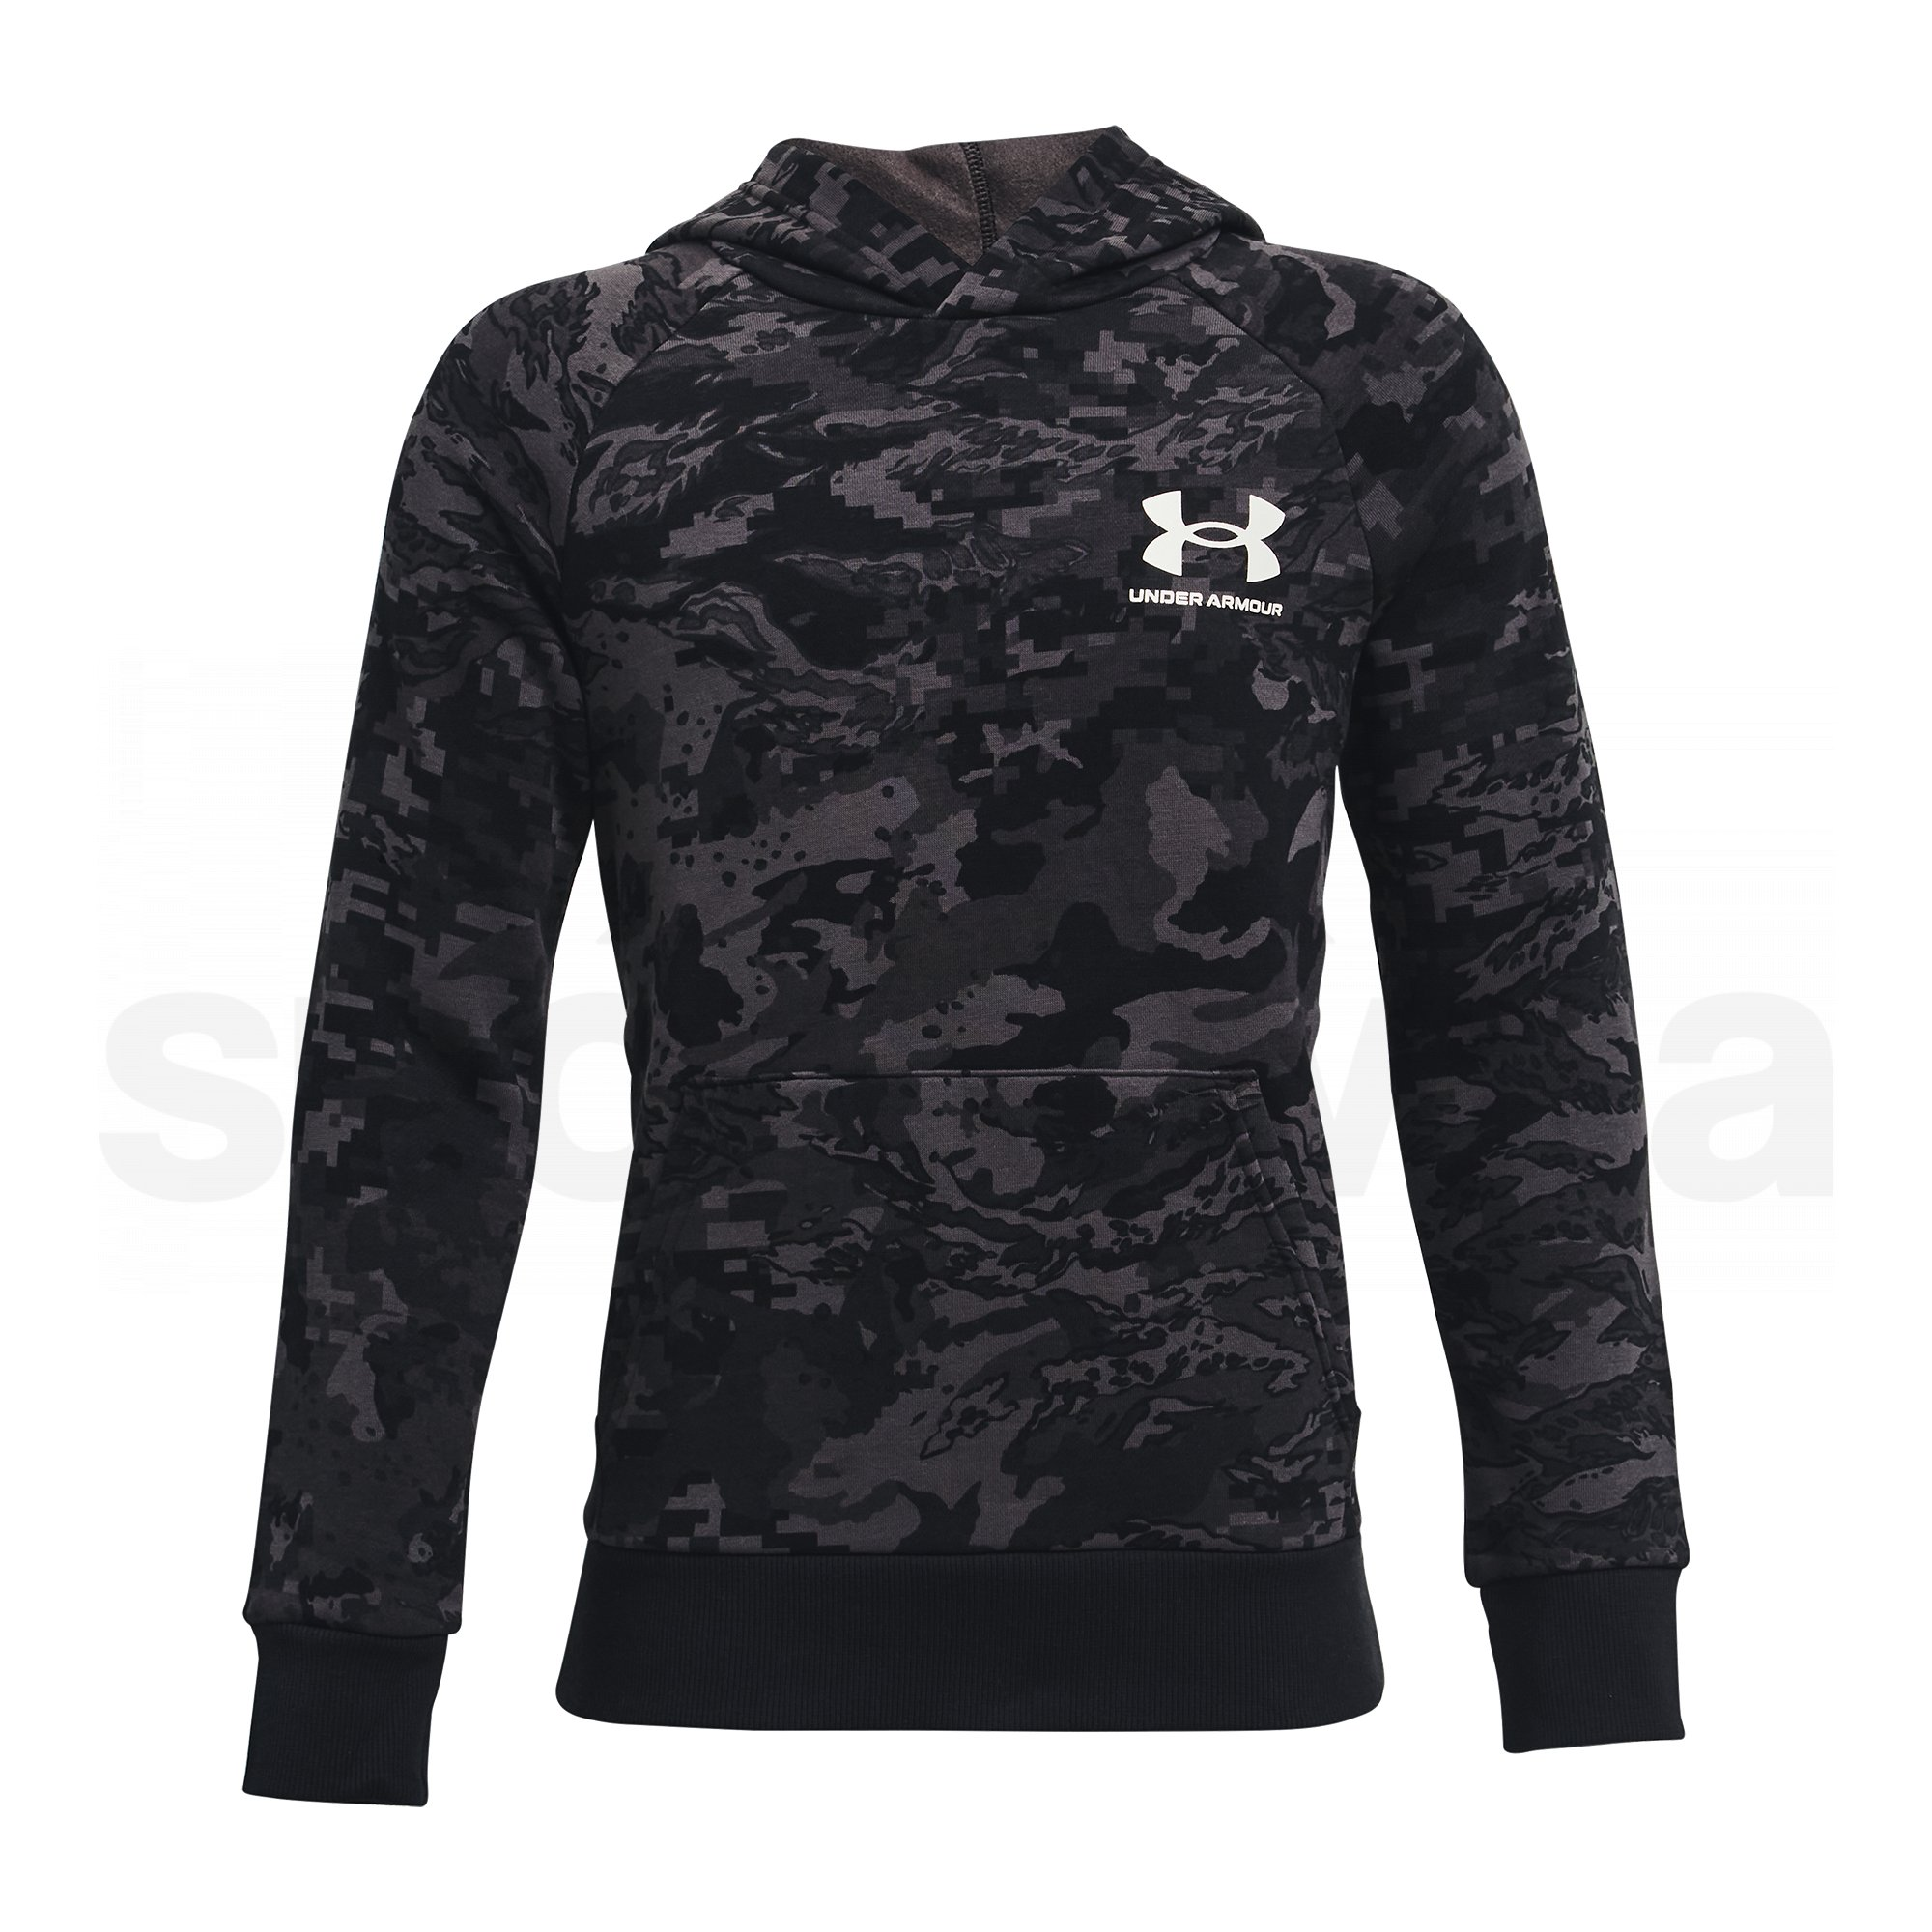 1366305-001_Under Armour Rival Flc ABC Camo Hoodie YM